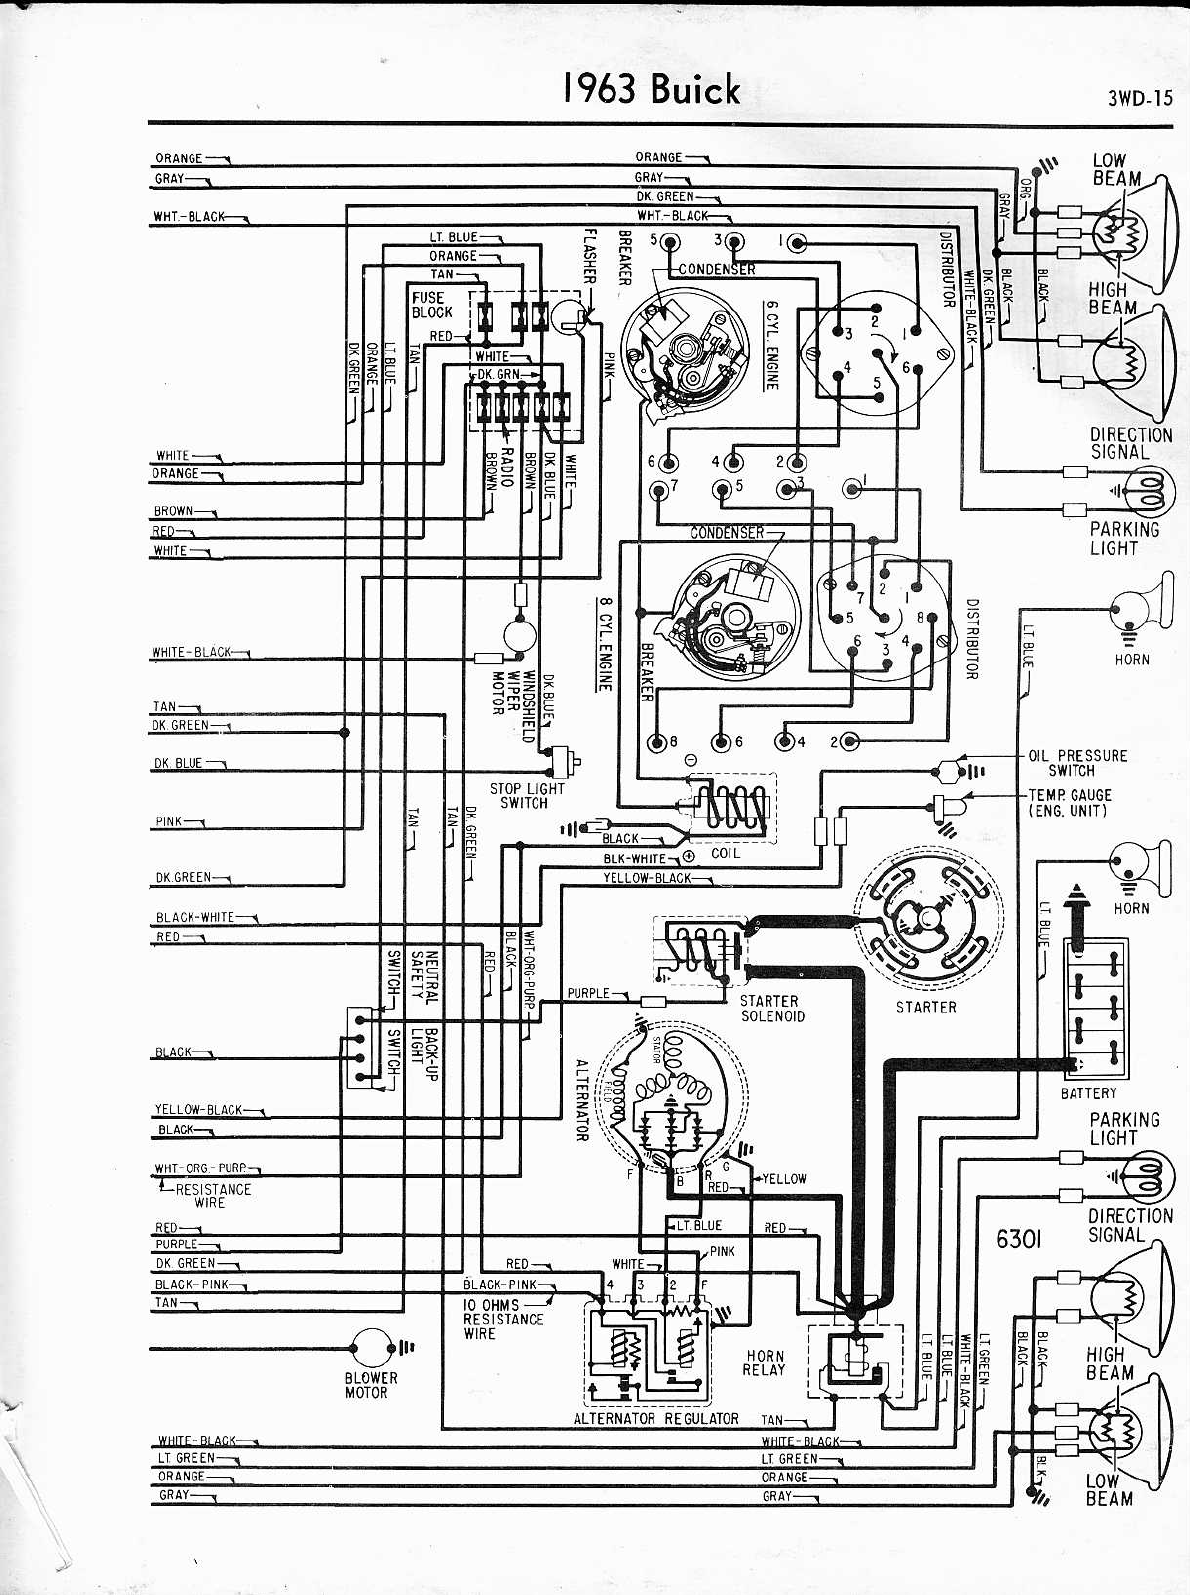 Alternator Wiring Diagram 1963 Buick Special